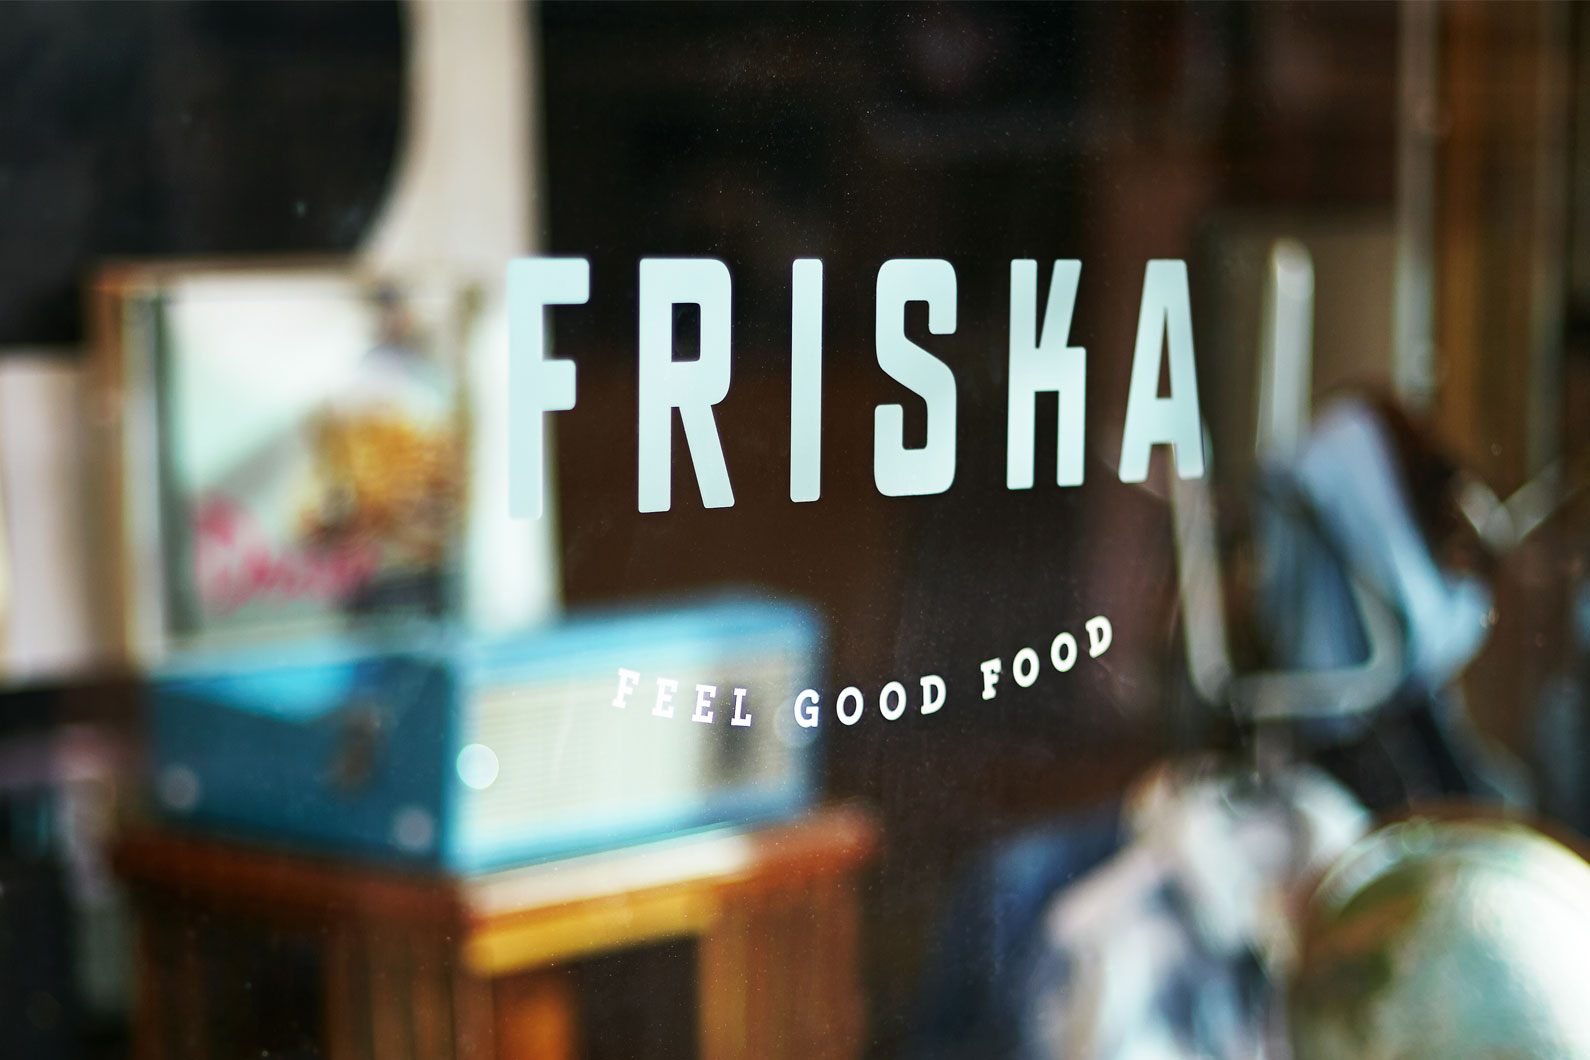 outside graphics for friska